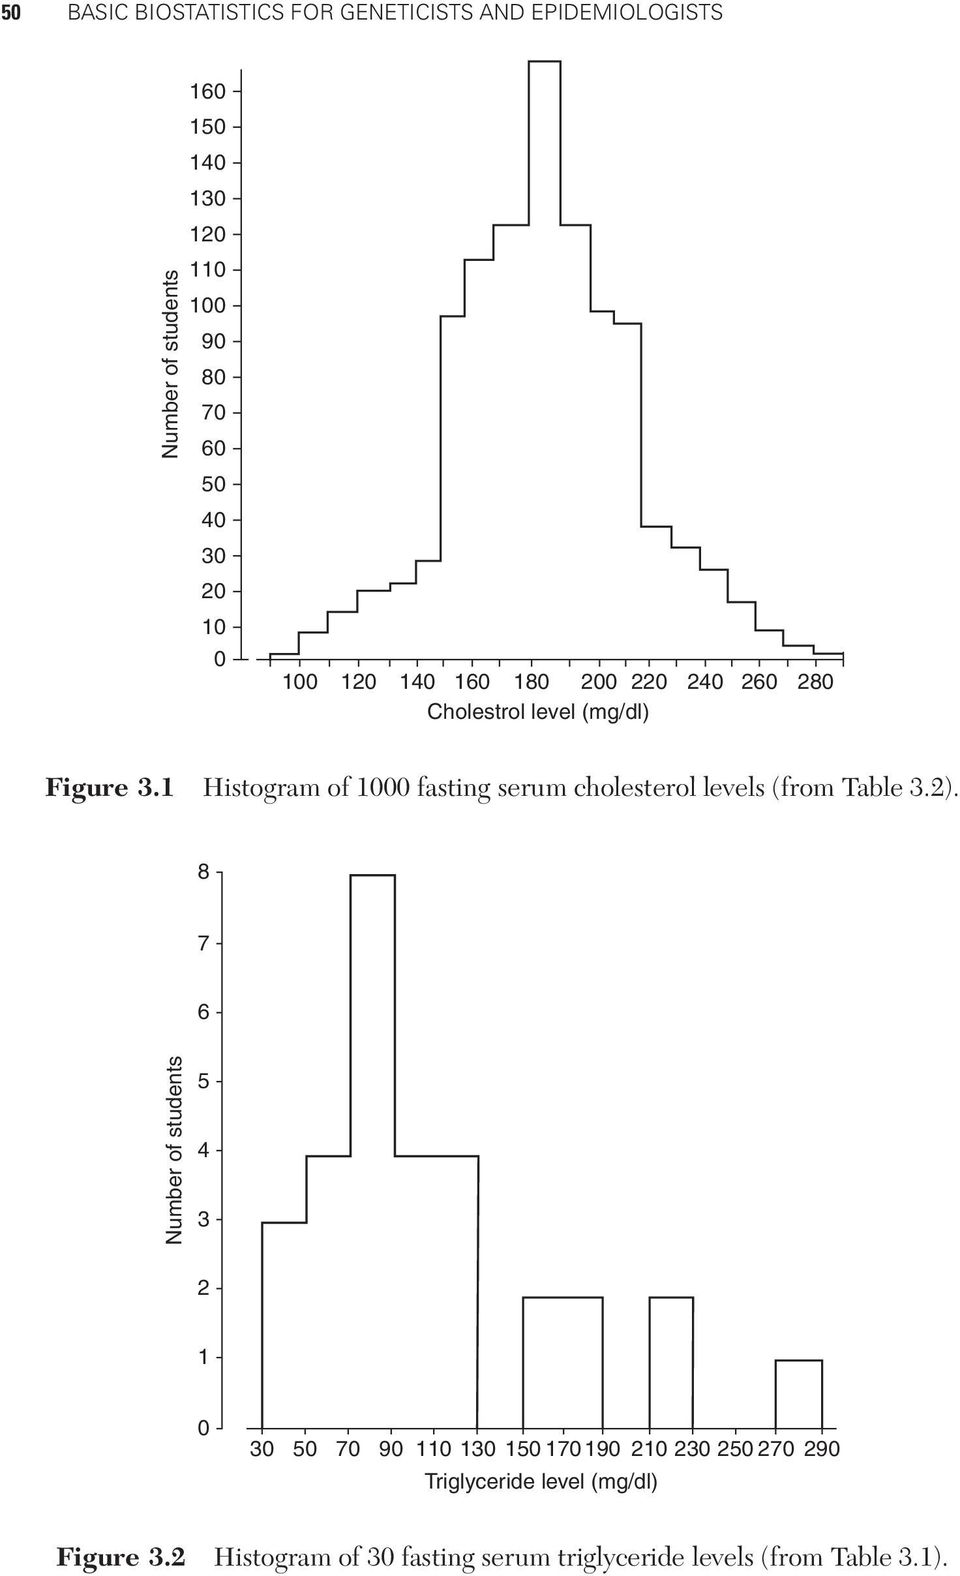 1 Histogram of 1000 fasting serum cholesterol levels (from Table 3.2).